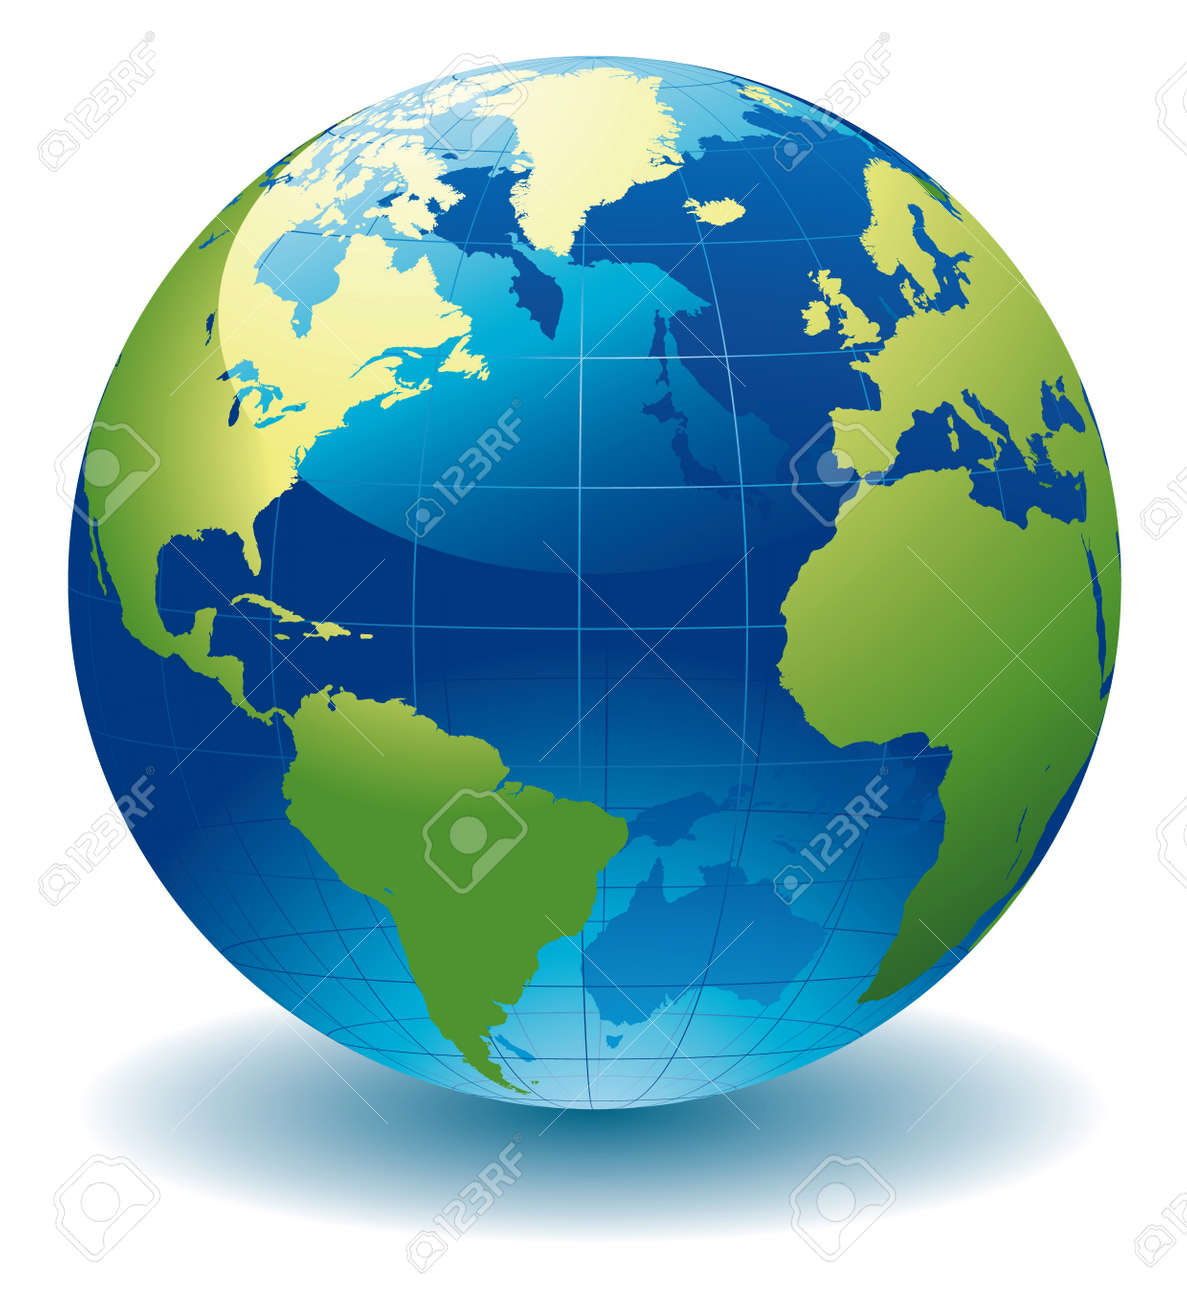 Globe Map Pictures.World Globe Map Royalty Free Cliparts Vectors And Stock